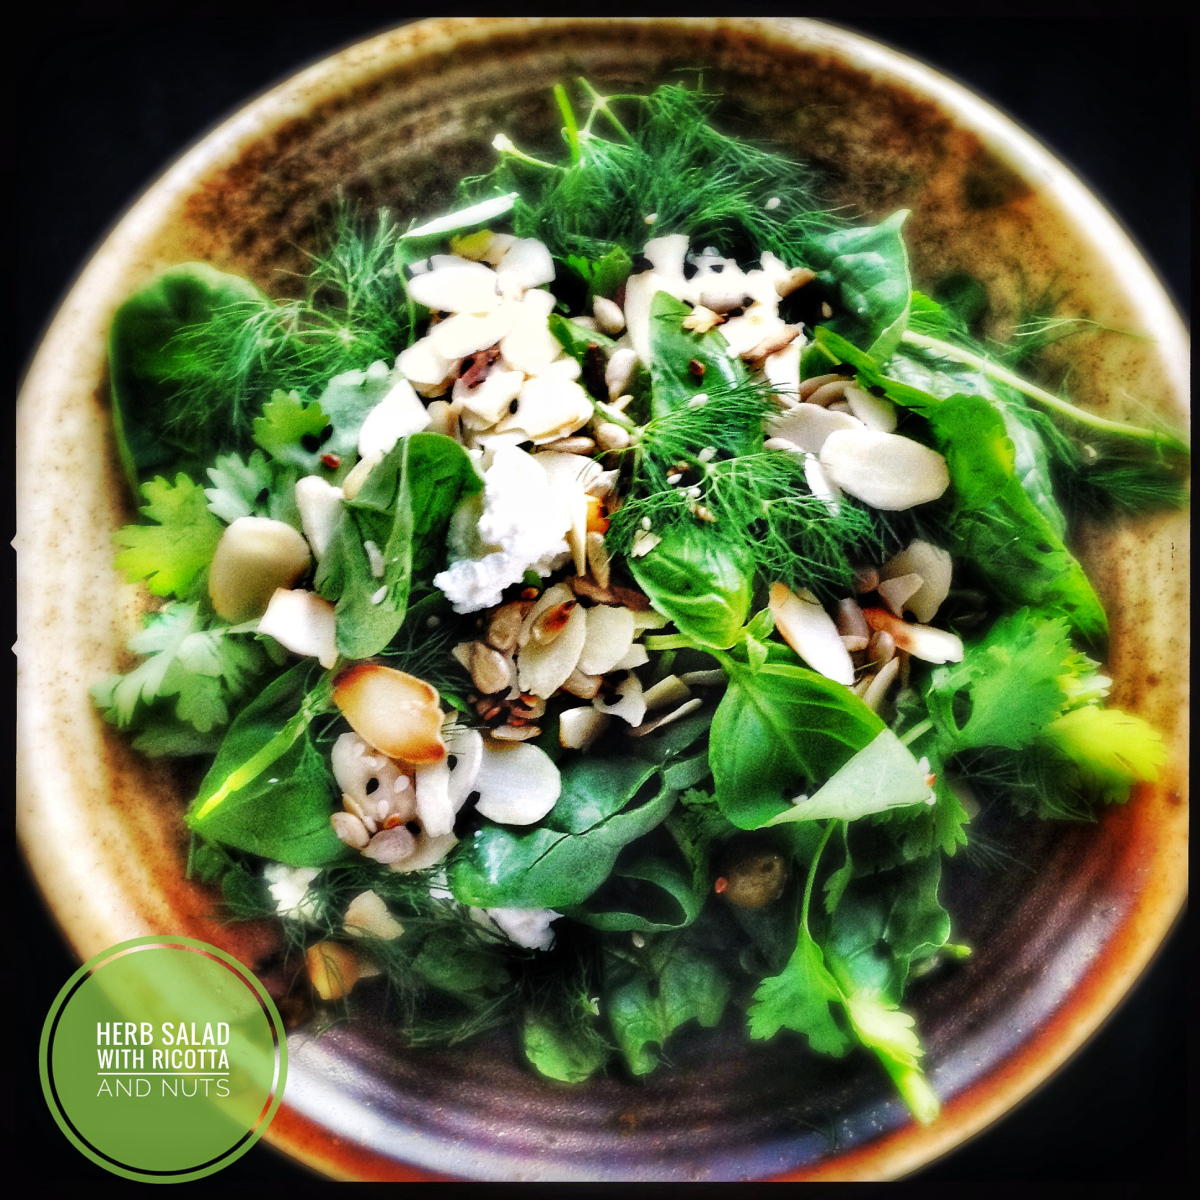 Spinach and Watercress Salad with Ricotta and Seeds